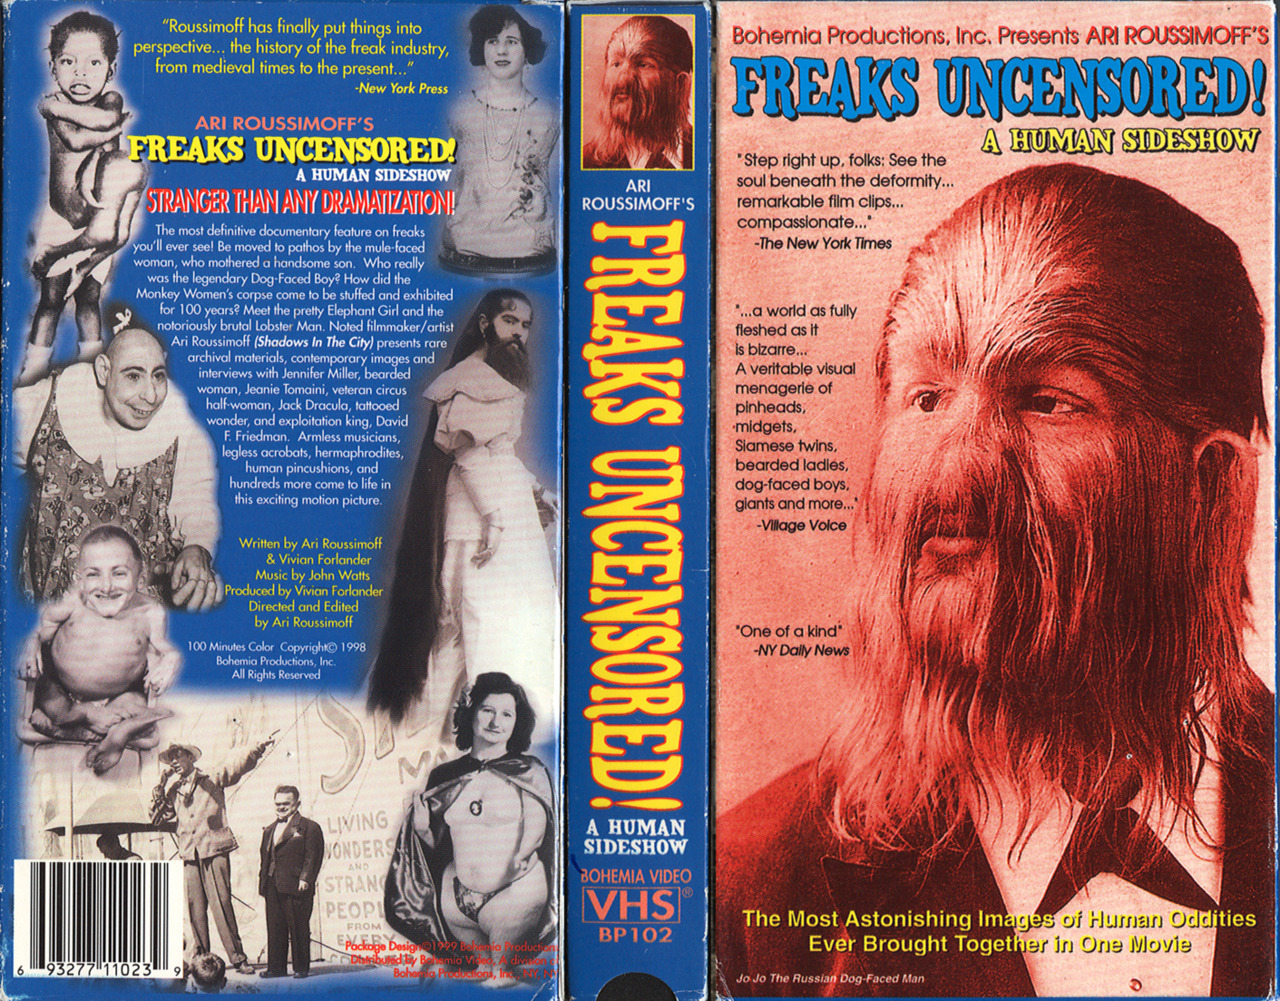 Scan from the Kermit Davenport VHS library: Freaks Uncensored: A Human Sideshow (1998).